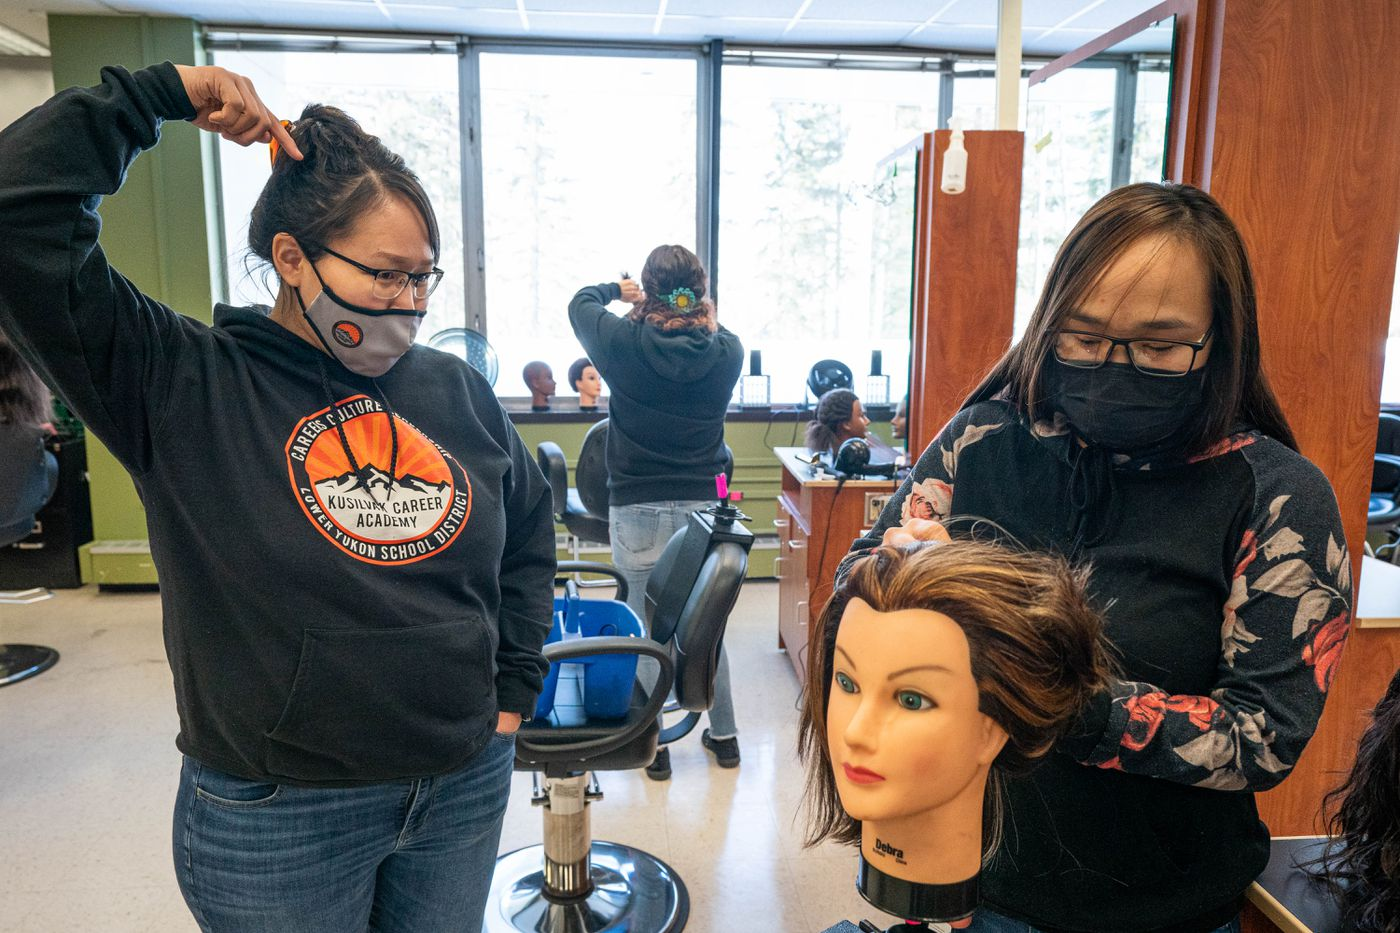 Amber Atchak, left, talks with Jeanette Paul during a cosmetology class at King Tech High School on April 2, 2021. Atchak is a resident assistant and instructional aide at Kusilvak Career Academy, where Paul is a student. Paul is from Pilot Station. (Loren Holmes / ADN)